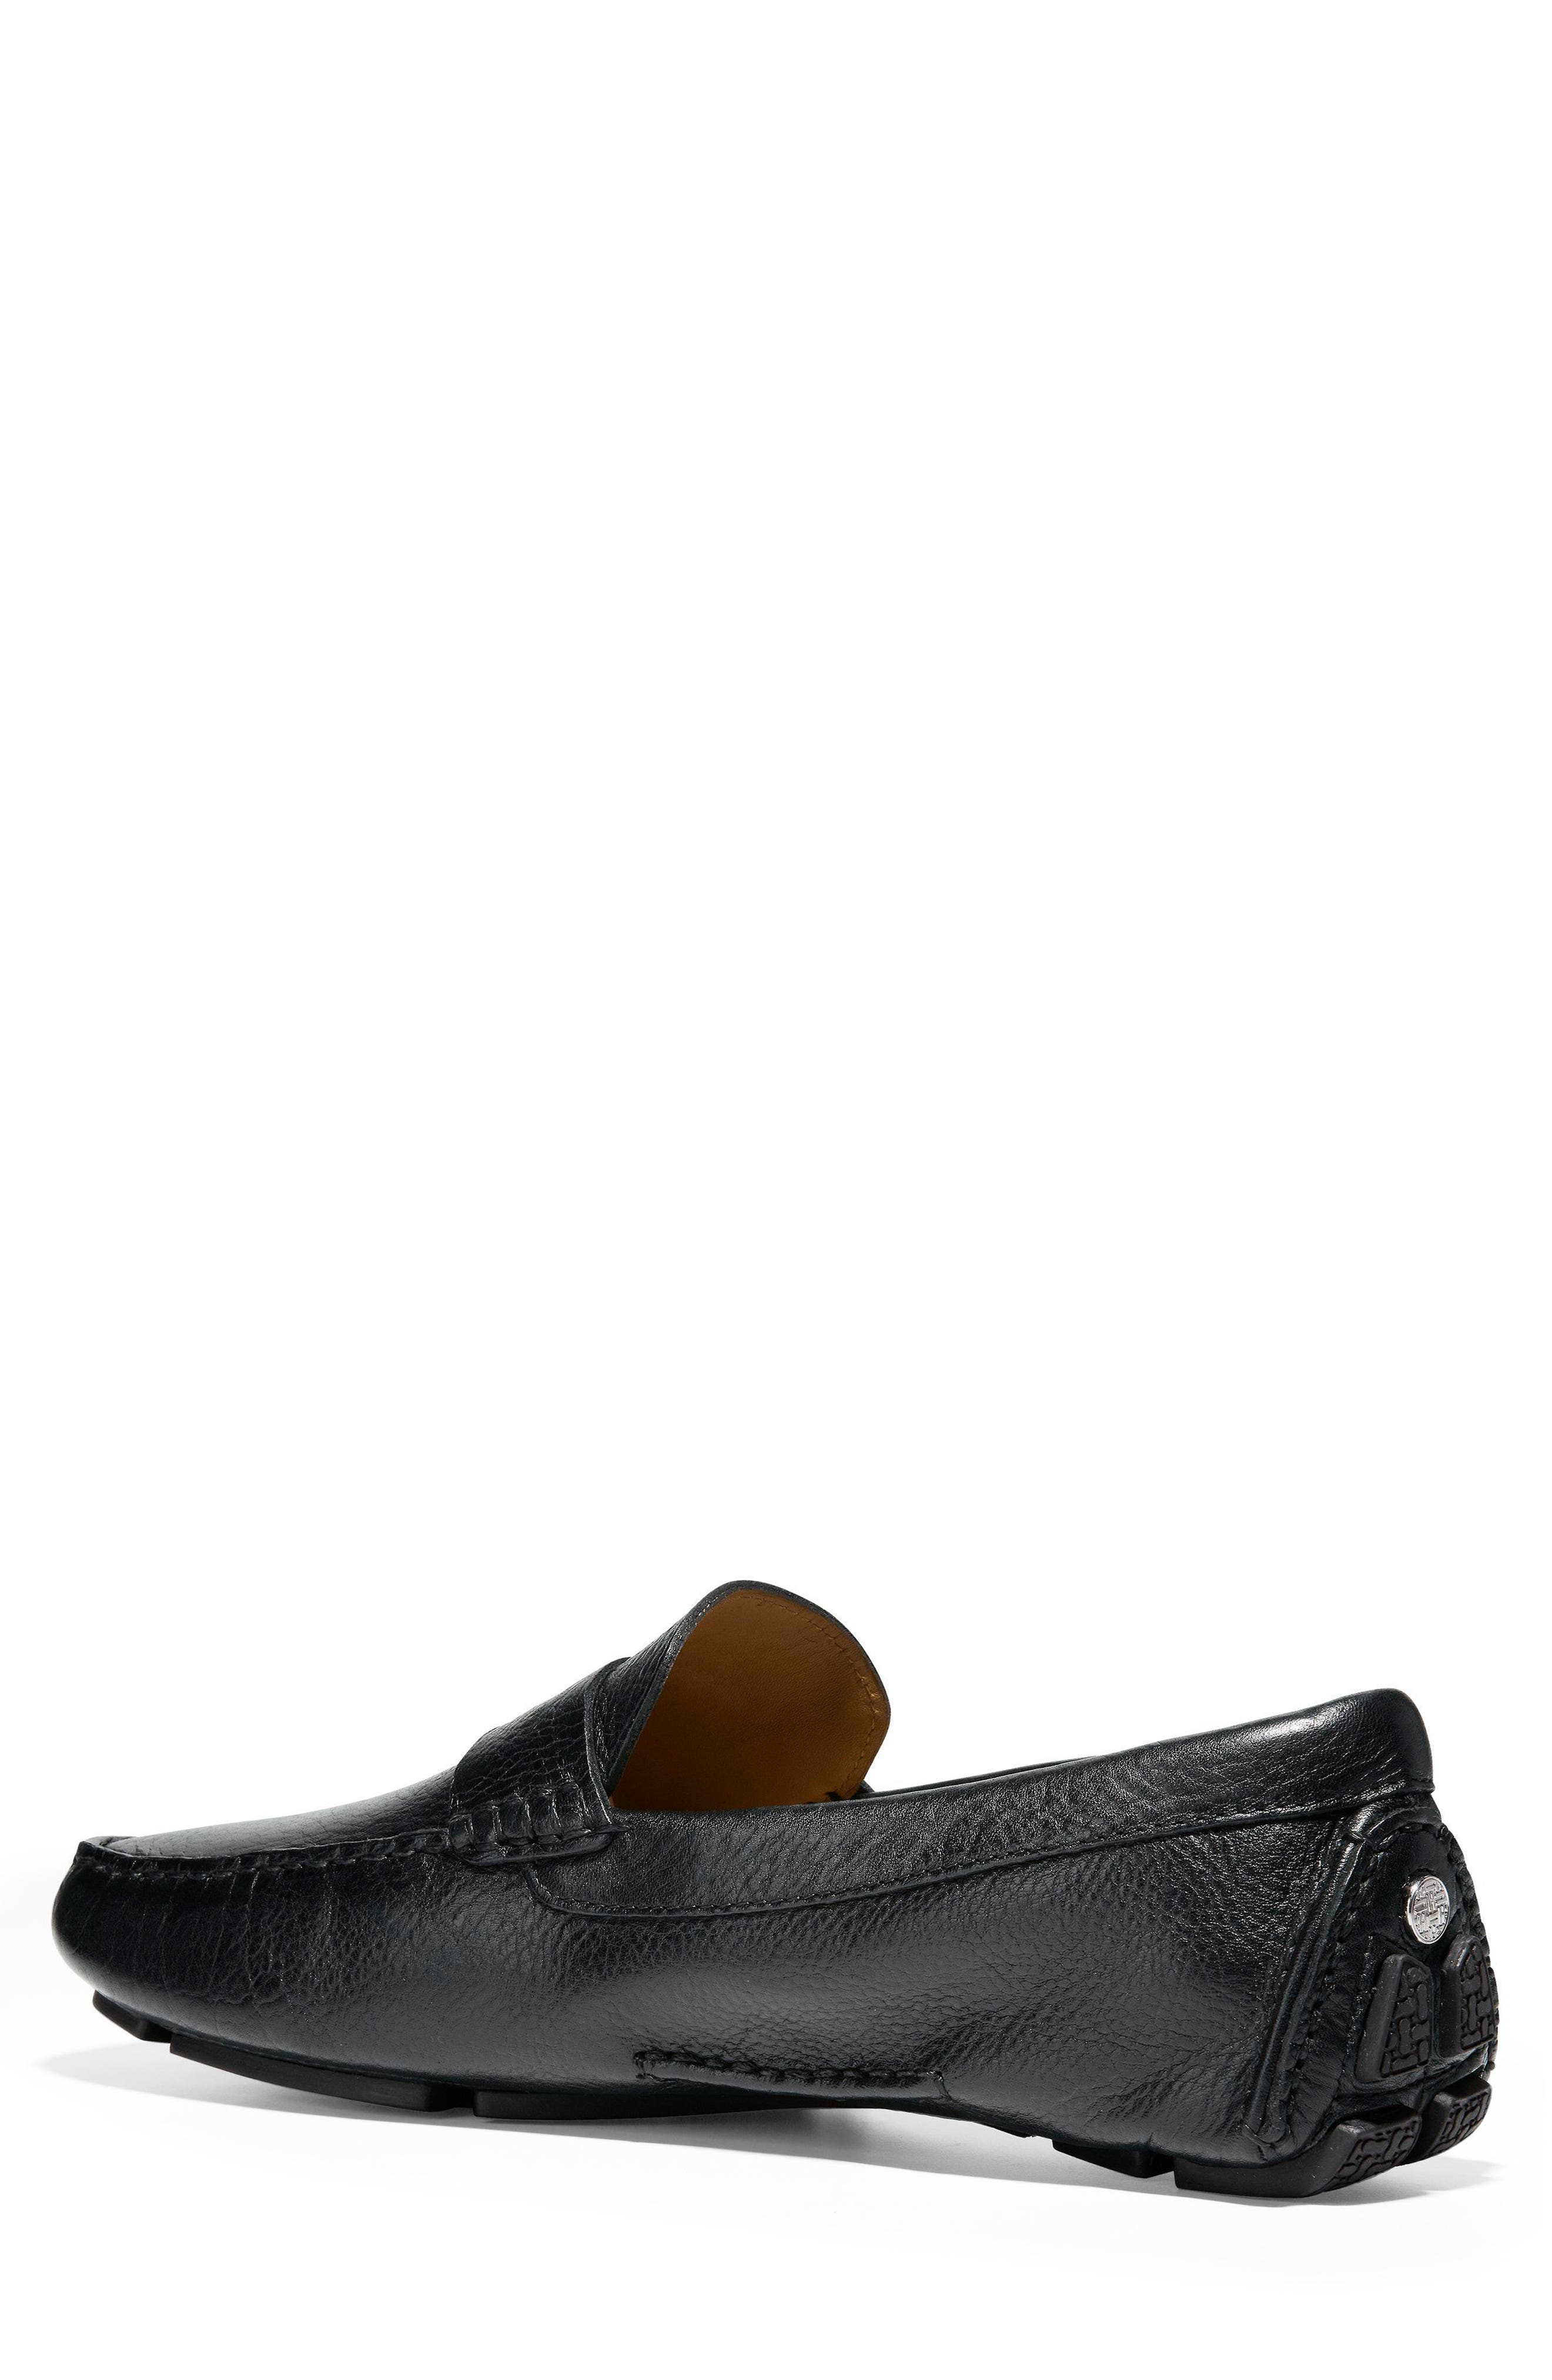 'Howland' Penny Loafer,                             Alternate thumbnail 3, color,                             BLACK TUMBLED